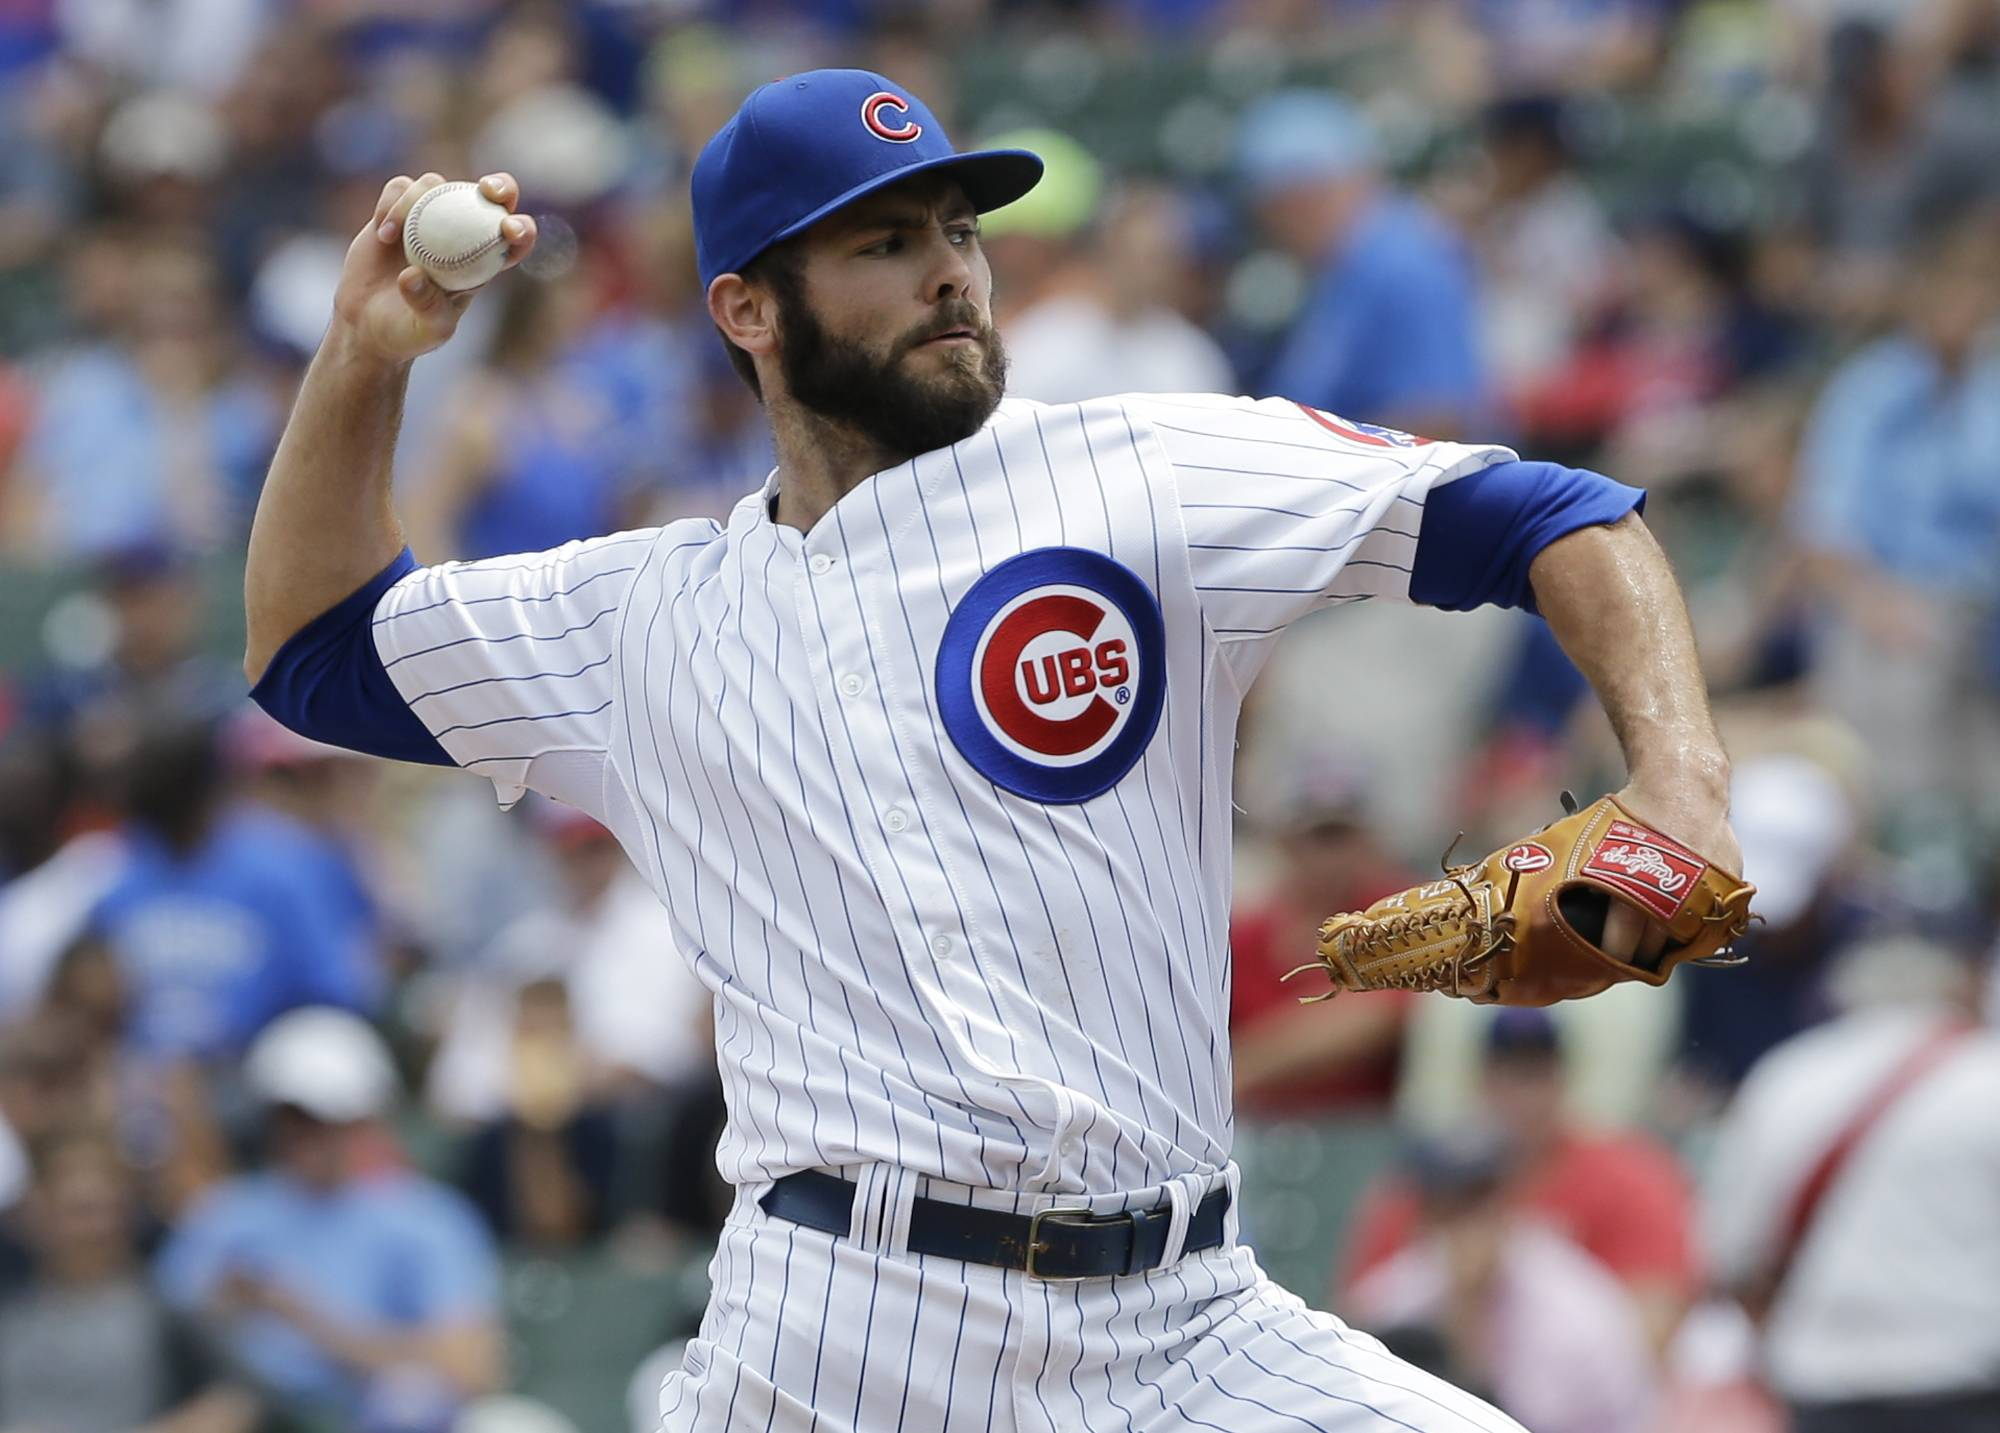 Chicago Cubs starter Jake Arrieta throws against the Colorado Rockies during the first inning of a baseball game in Chicago, Thursday, July 31, 2014.